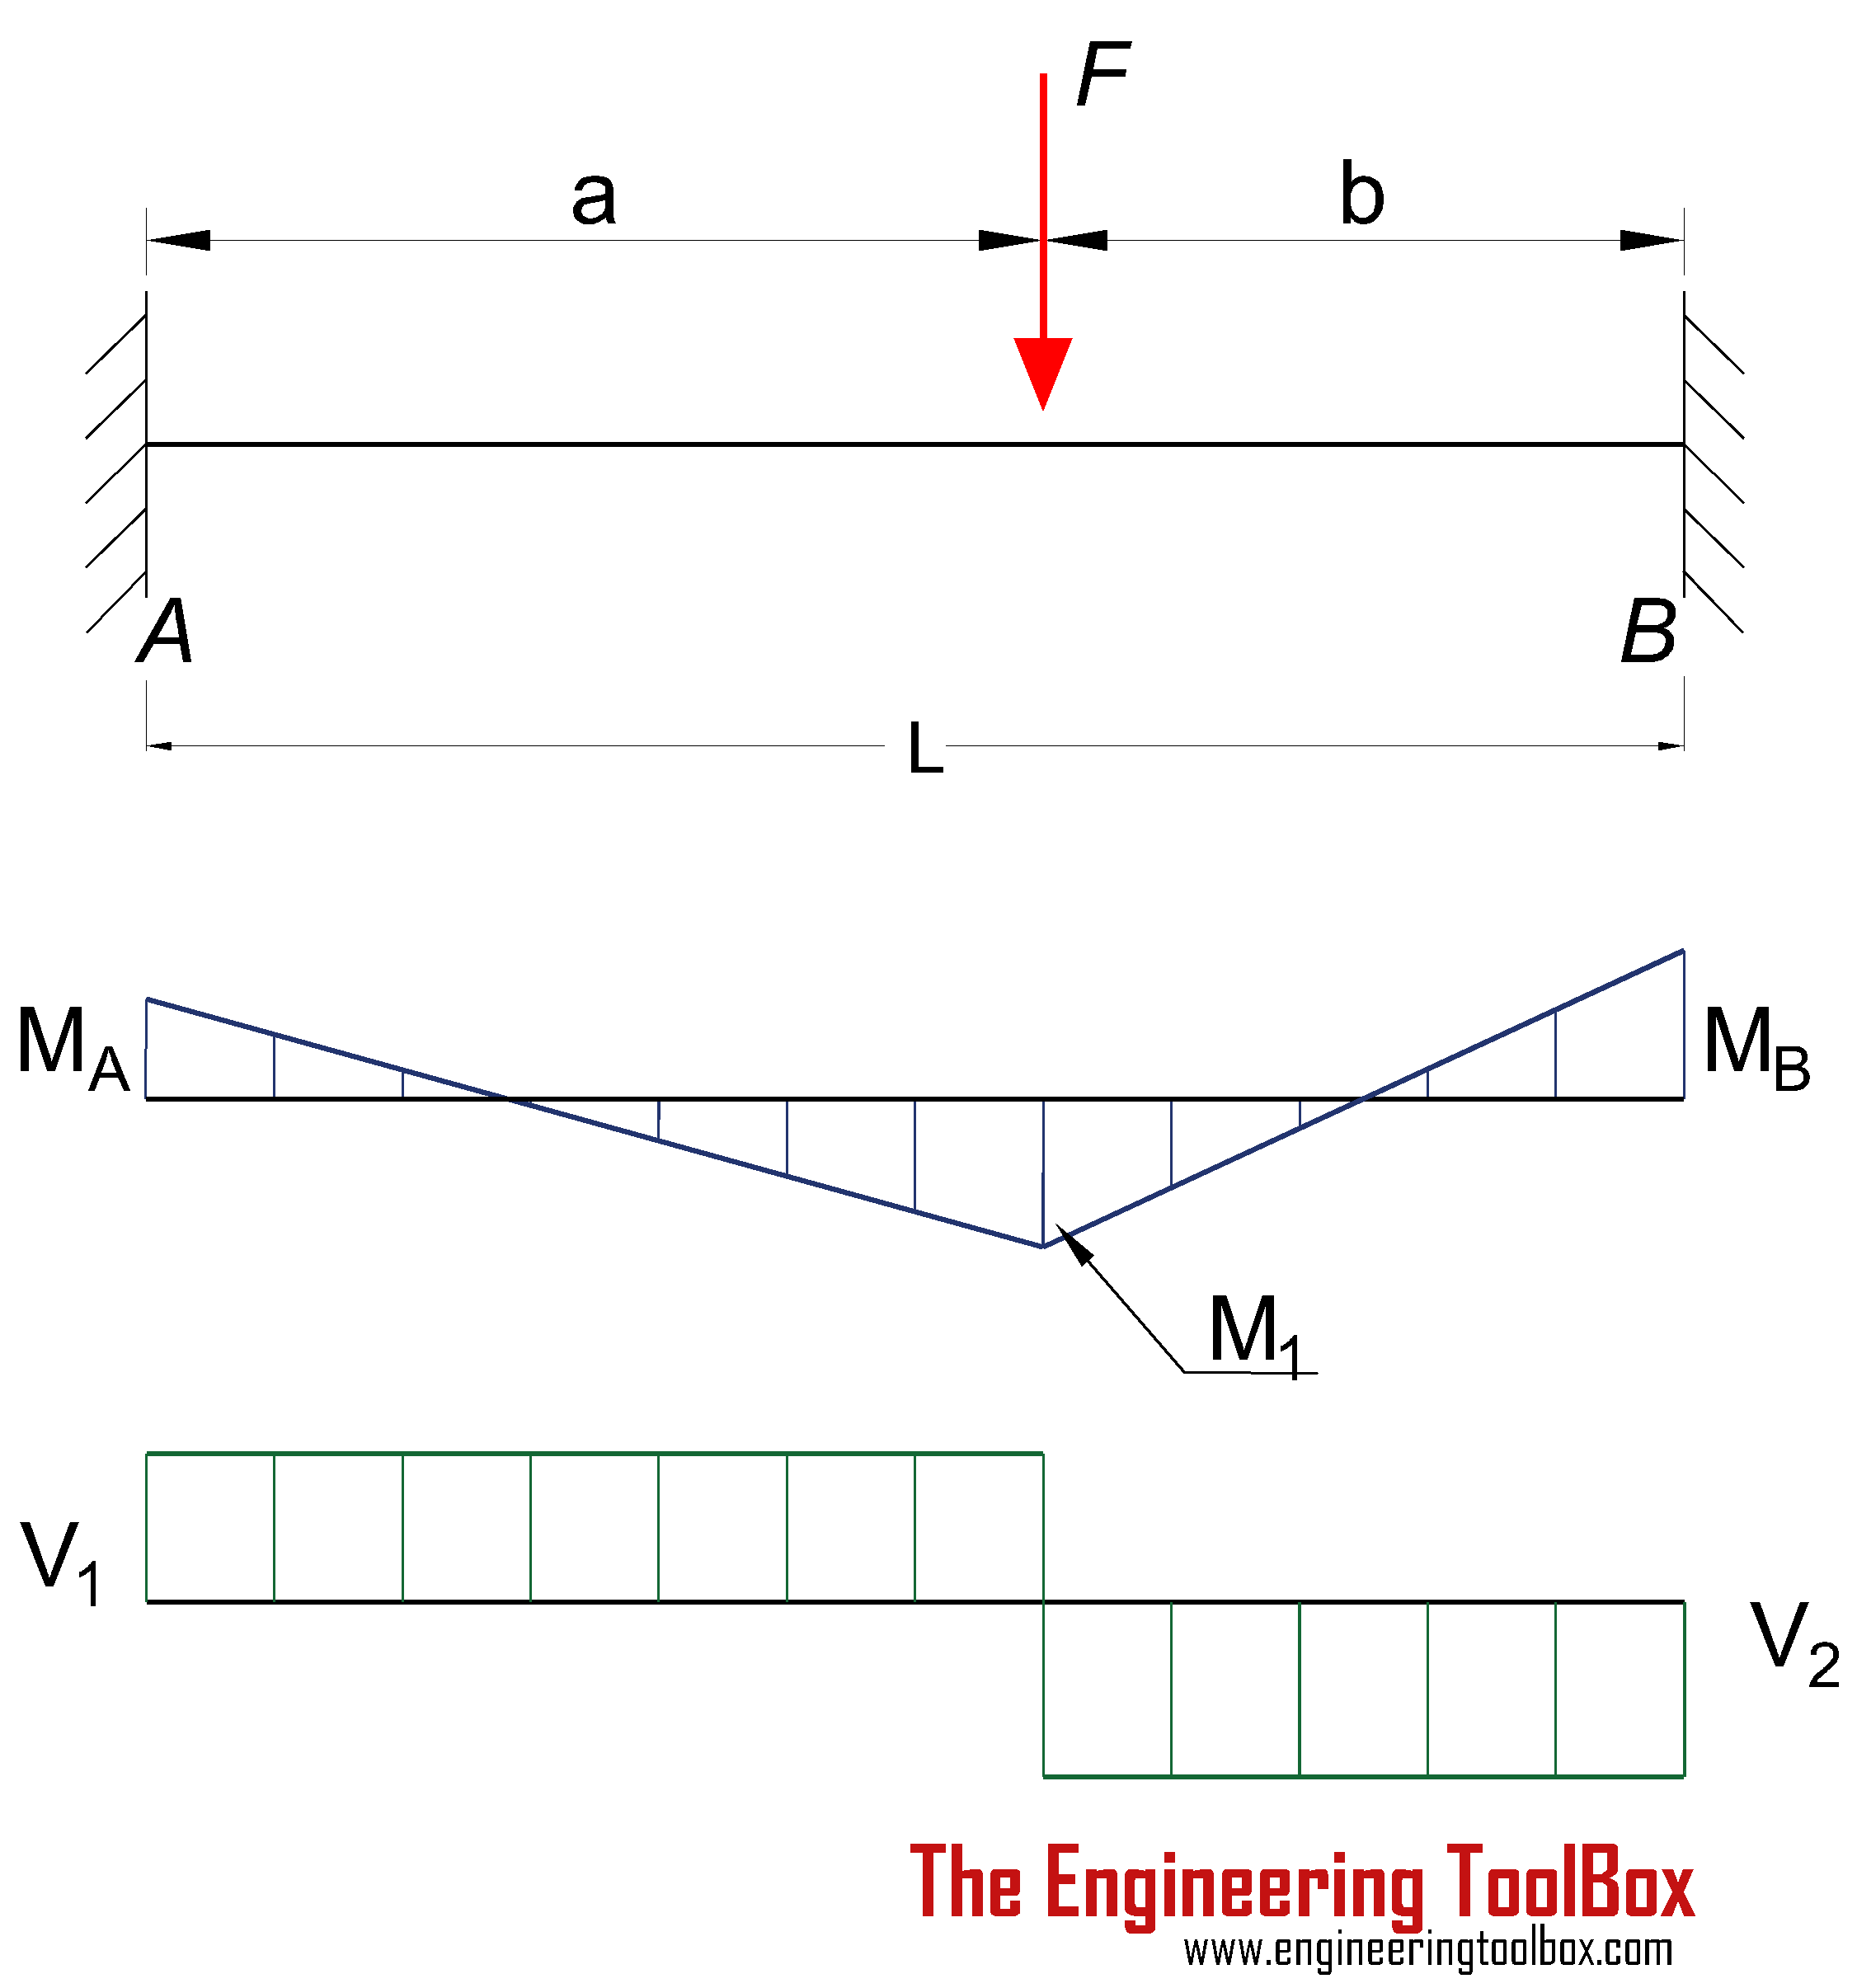 beams fixed at both ends continuous and point loads rh engineeringtoolbox com Beam Deflection Diagrams Beam Deflection Diagrams